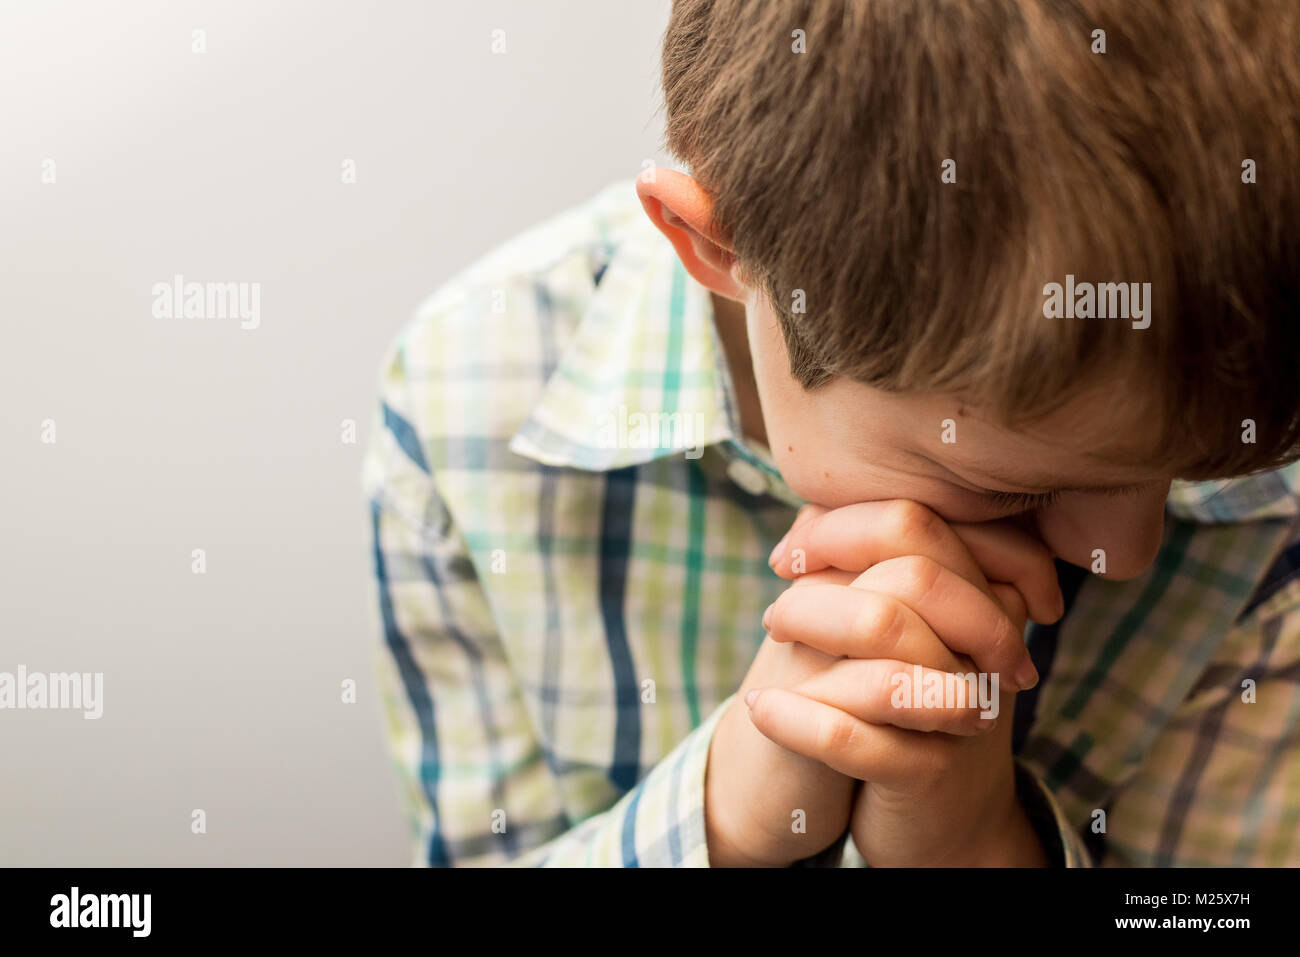 A young boy with his head bowed in prayer - Stock Image